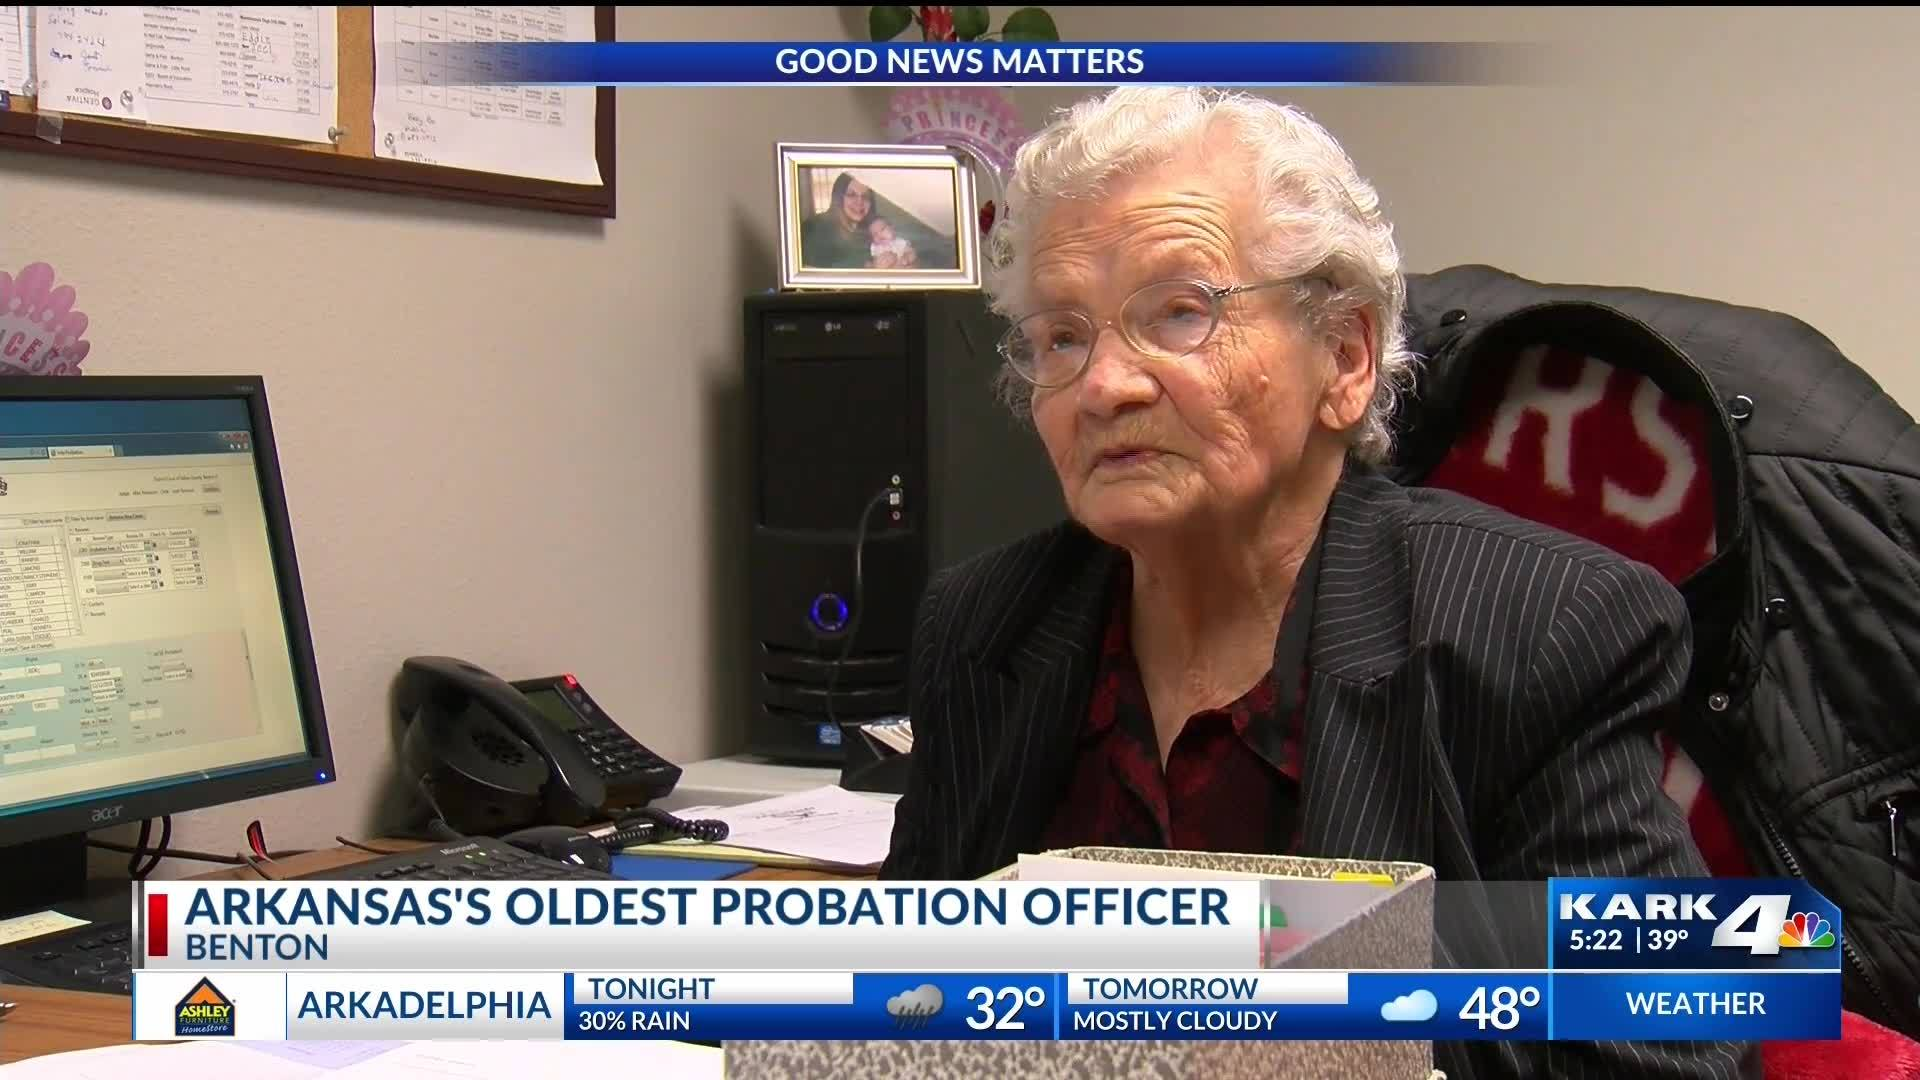 Arkansas's Oldest Probation Officer